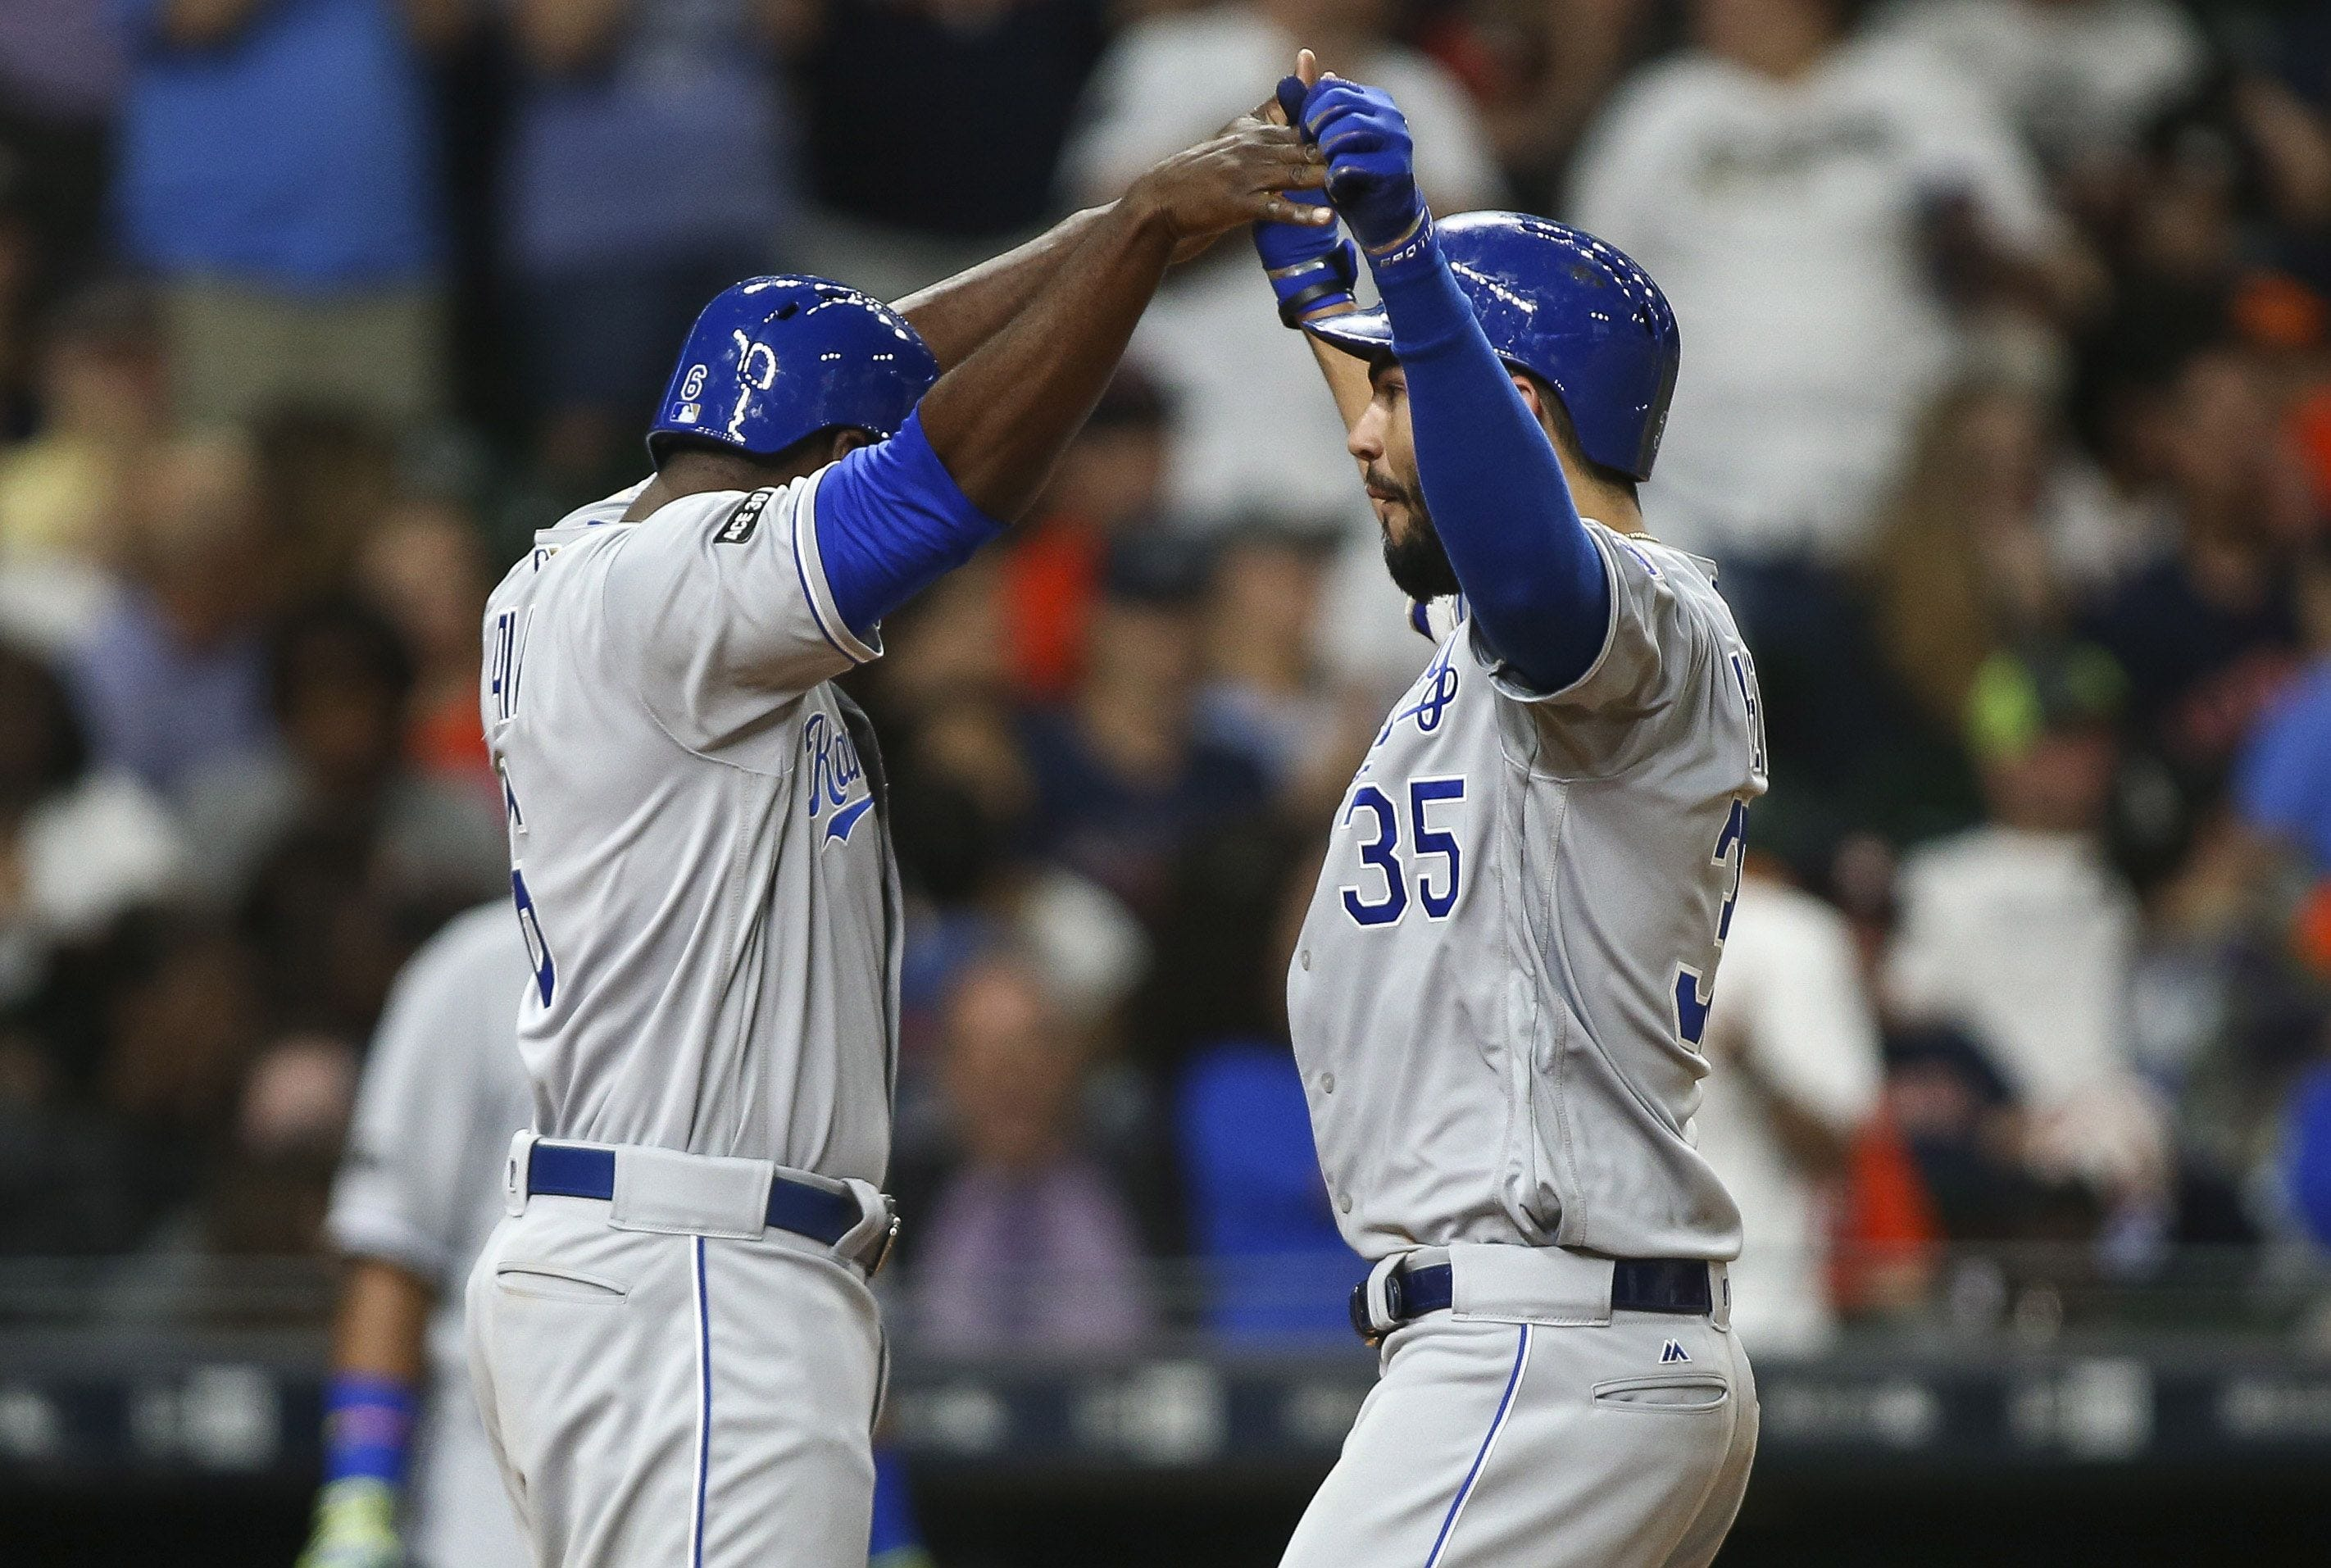 636317350591879062-USP-MLB--Kansas-City-Royals-at-Houston-Astros MLB trade targets: Top 25 players who could move by the deadline